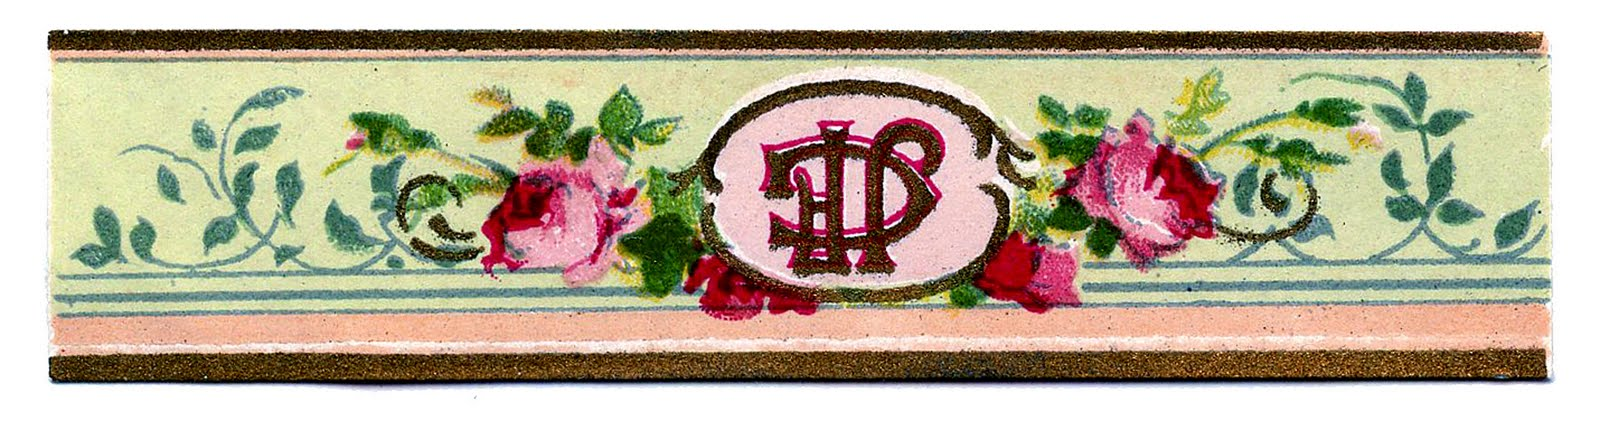 Vintage Graphic - French Soap or Perfume Label - Rose - The Graphics